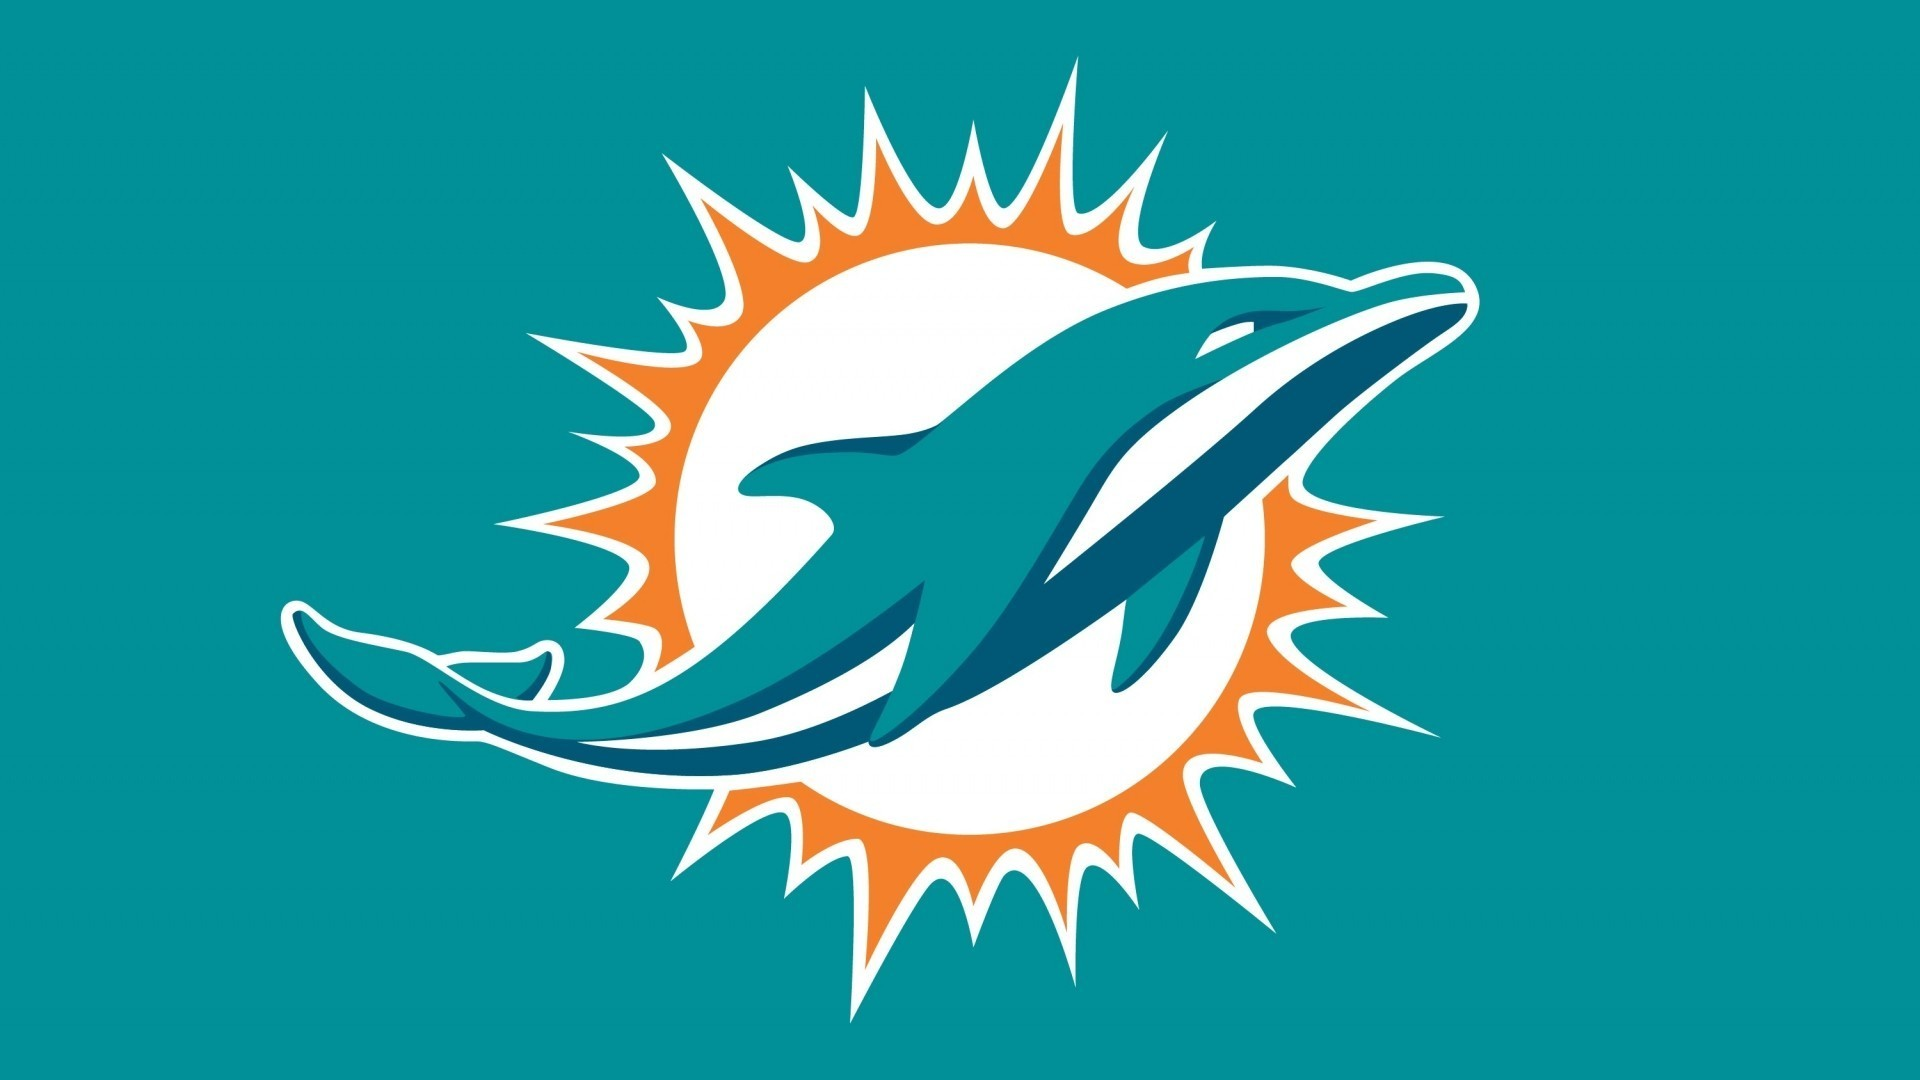 1920x1080 undefined Miami Dolphin Wallpapers (41 Wallpapers) | Adorable Wallpapers